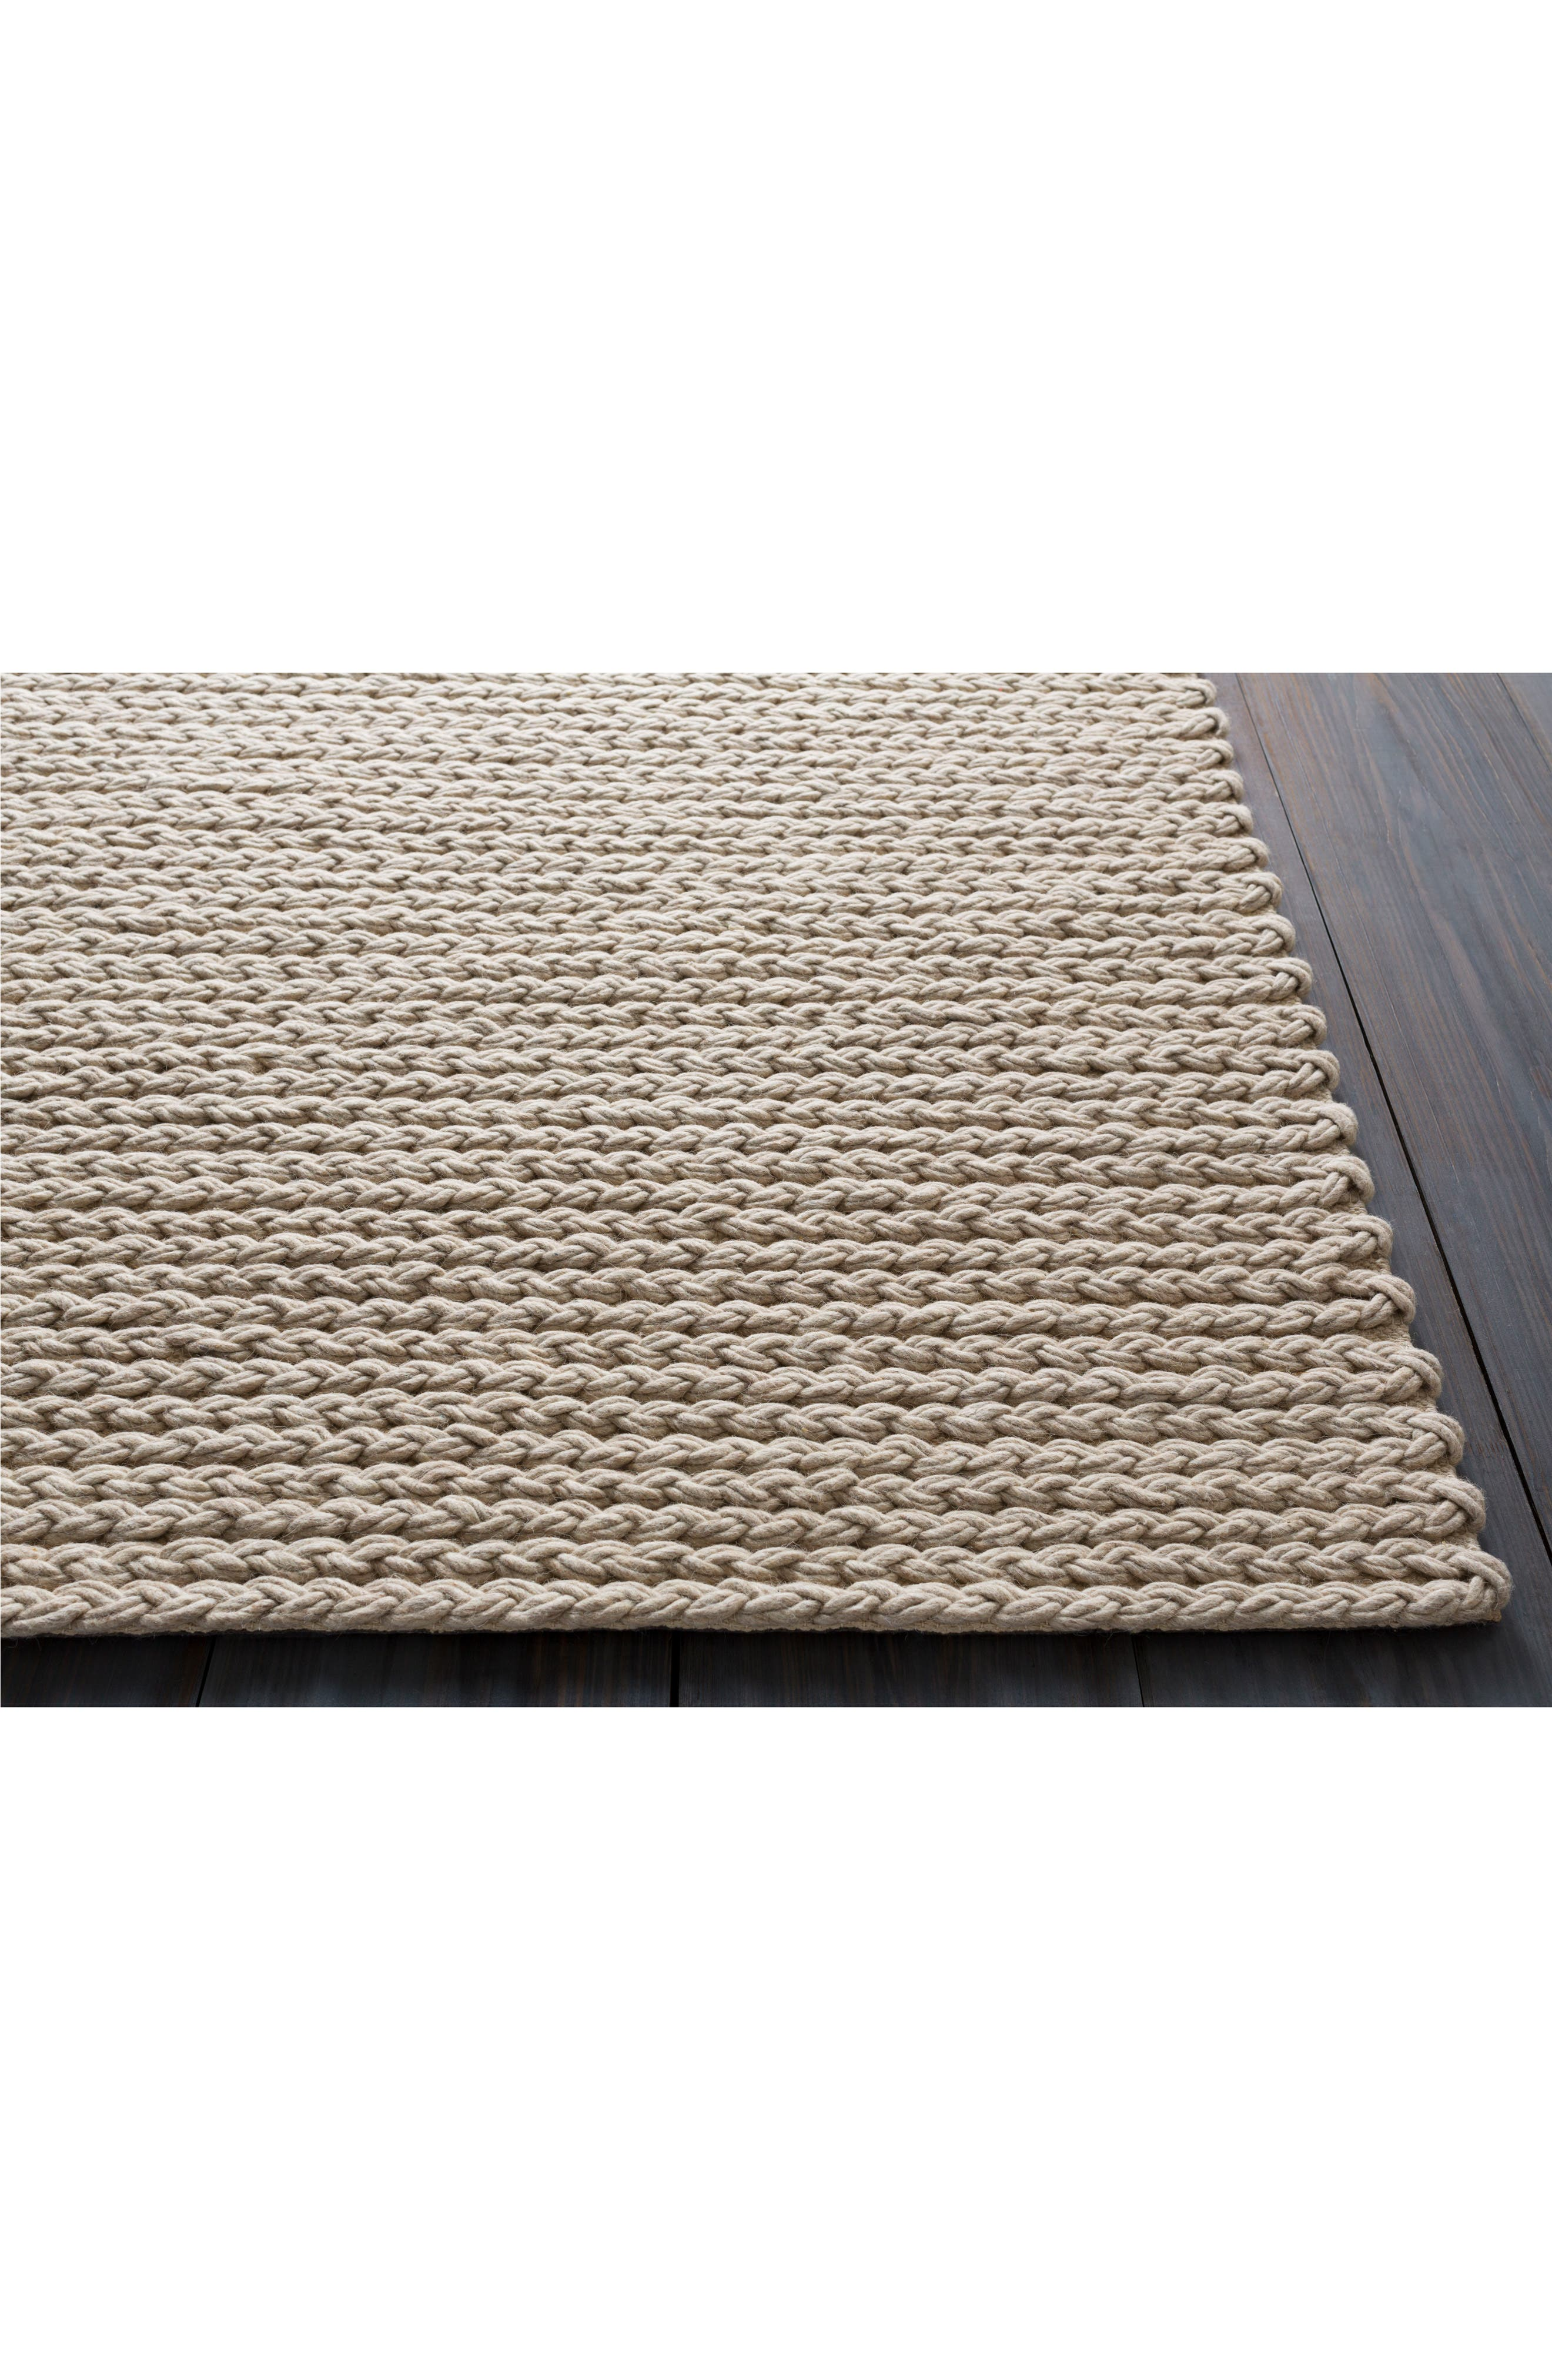 Alternate Image 2  - Surya Home 'Yukon' Hand Woven Wool Rug